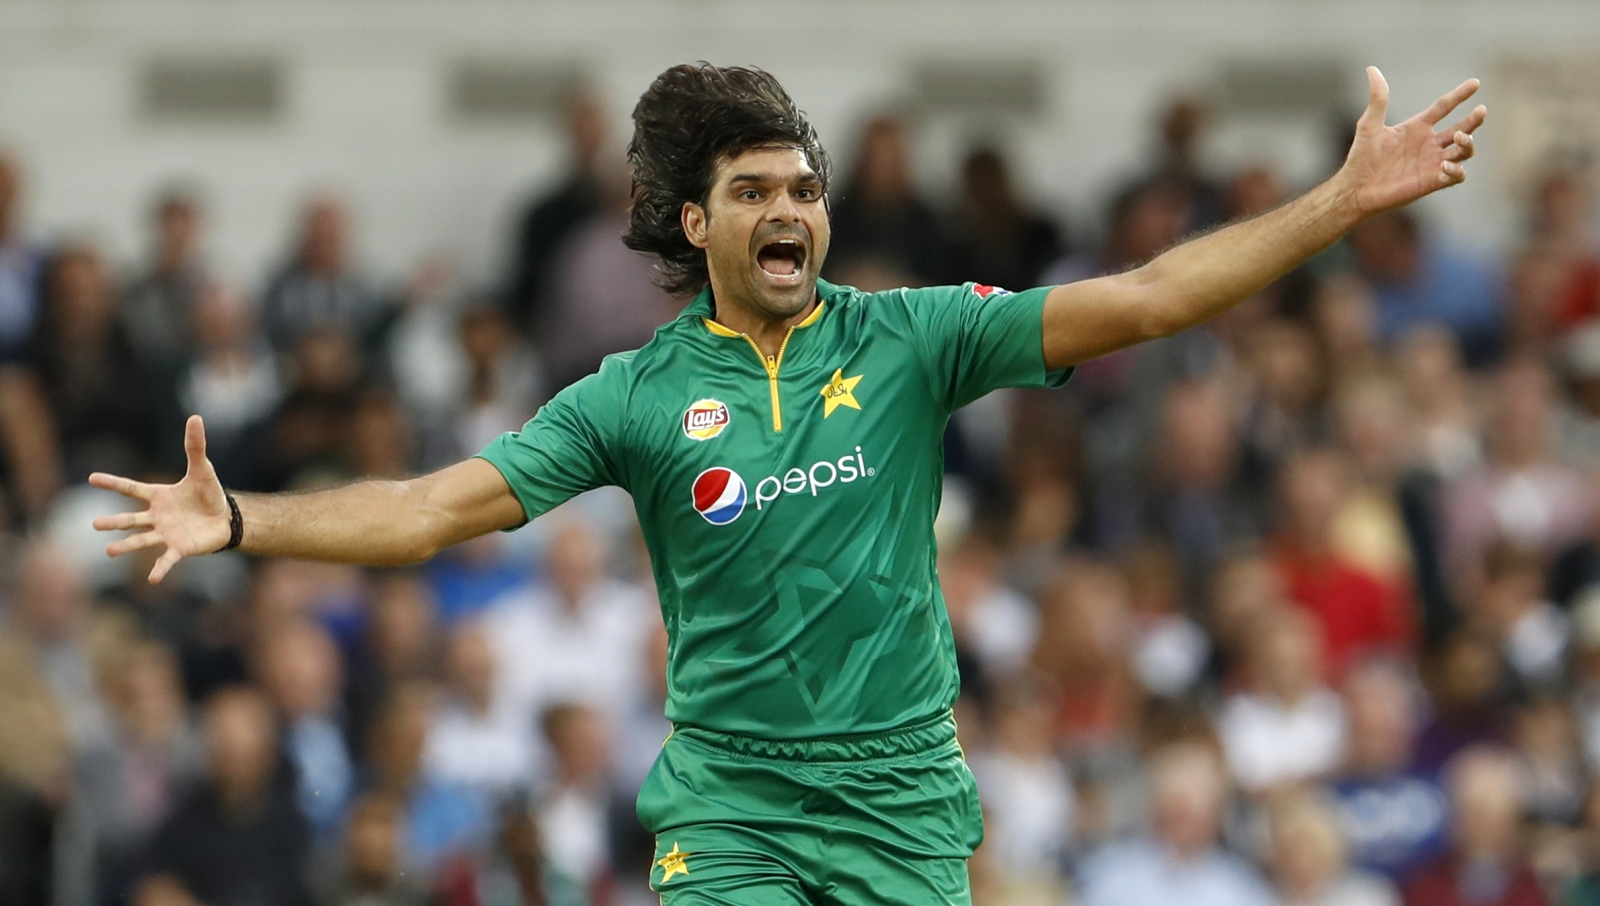 Pakistan bowler Mohammad Irfan handed one-year ban after spot-fixing approach